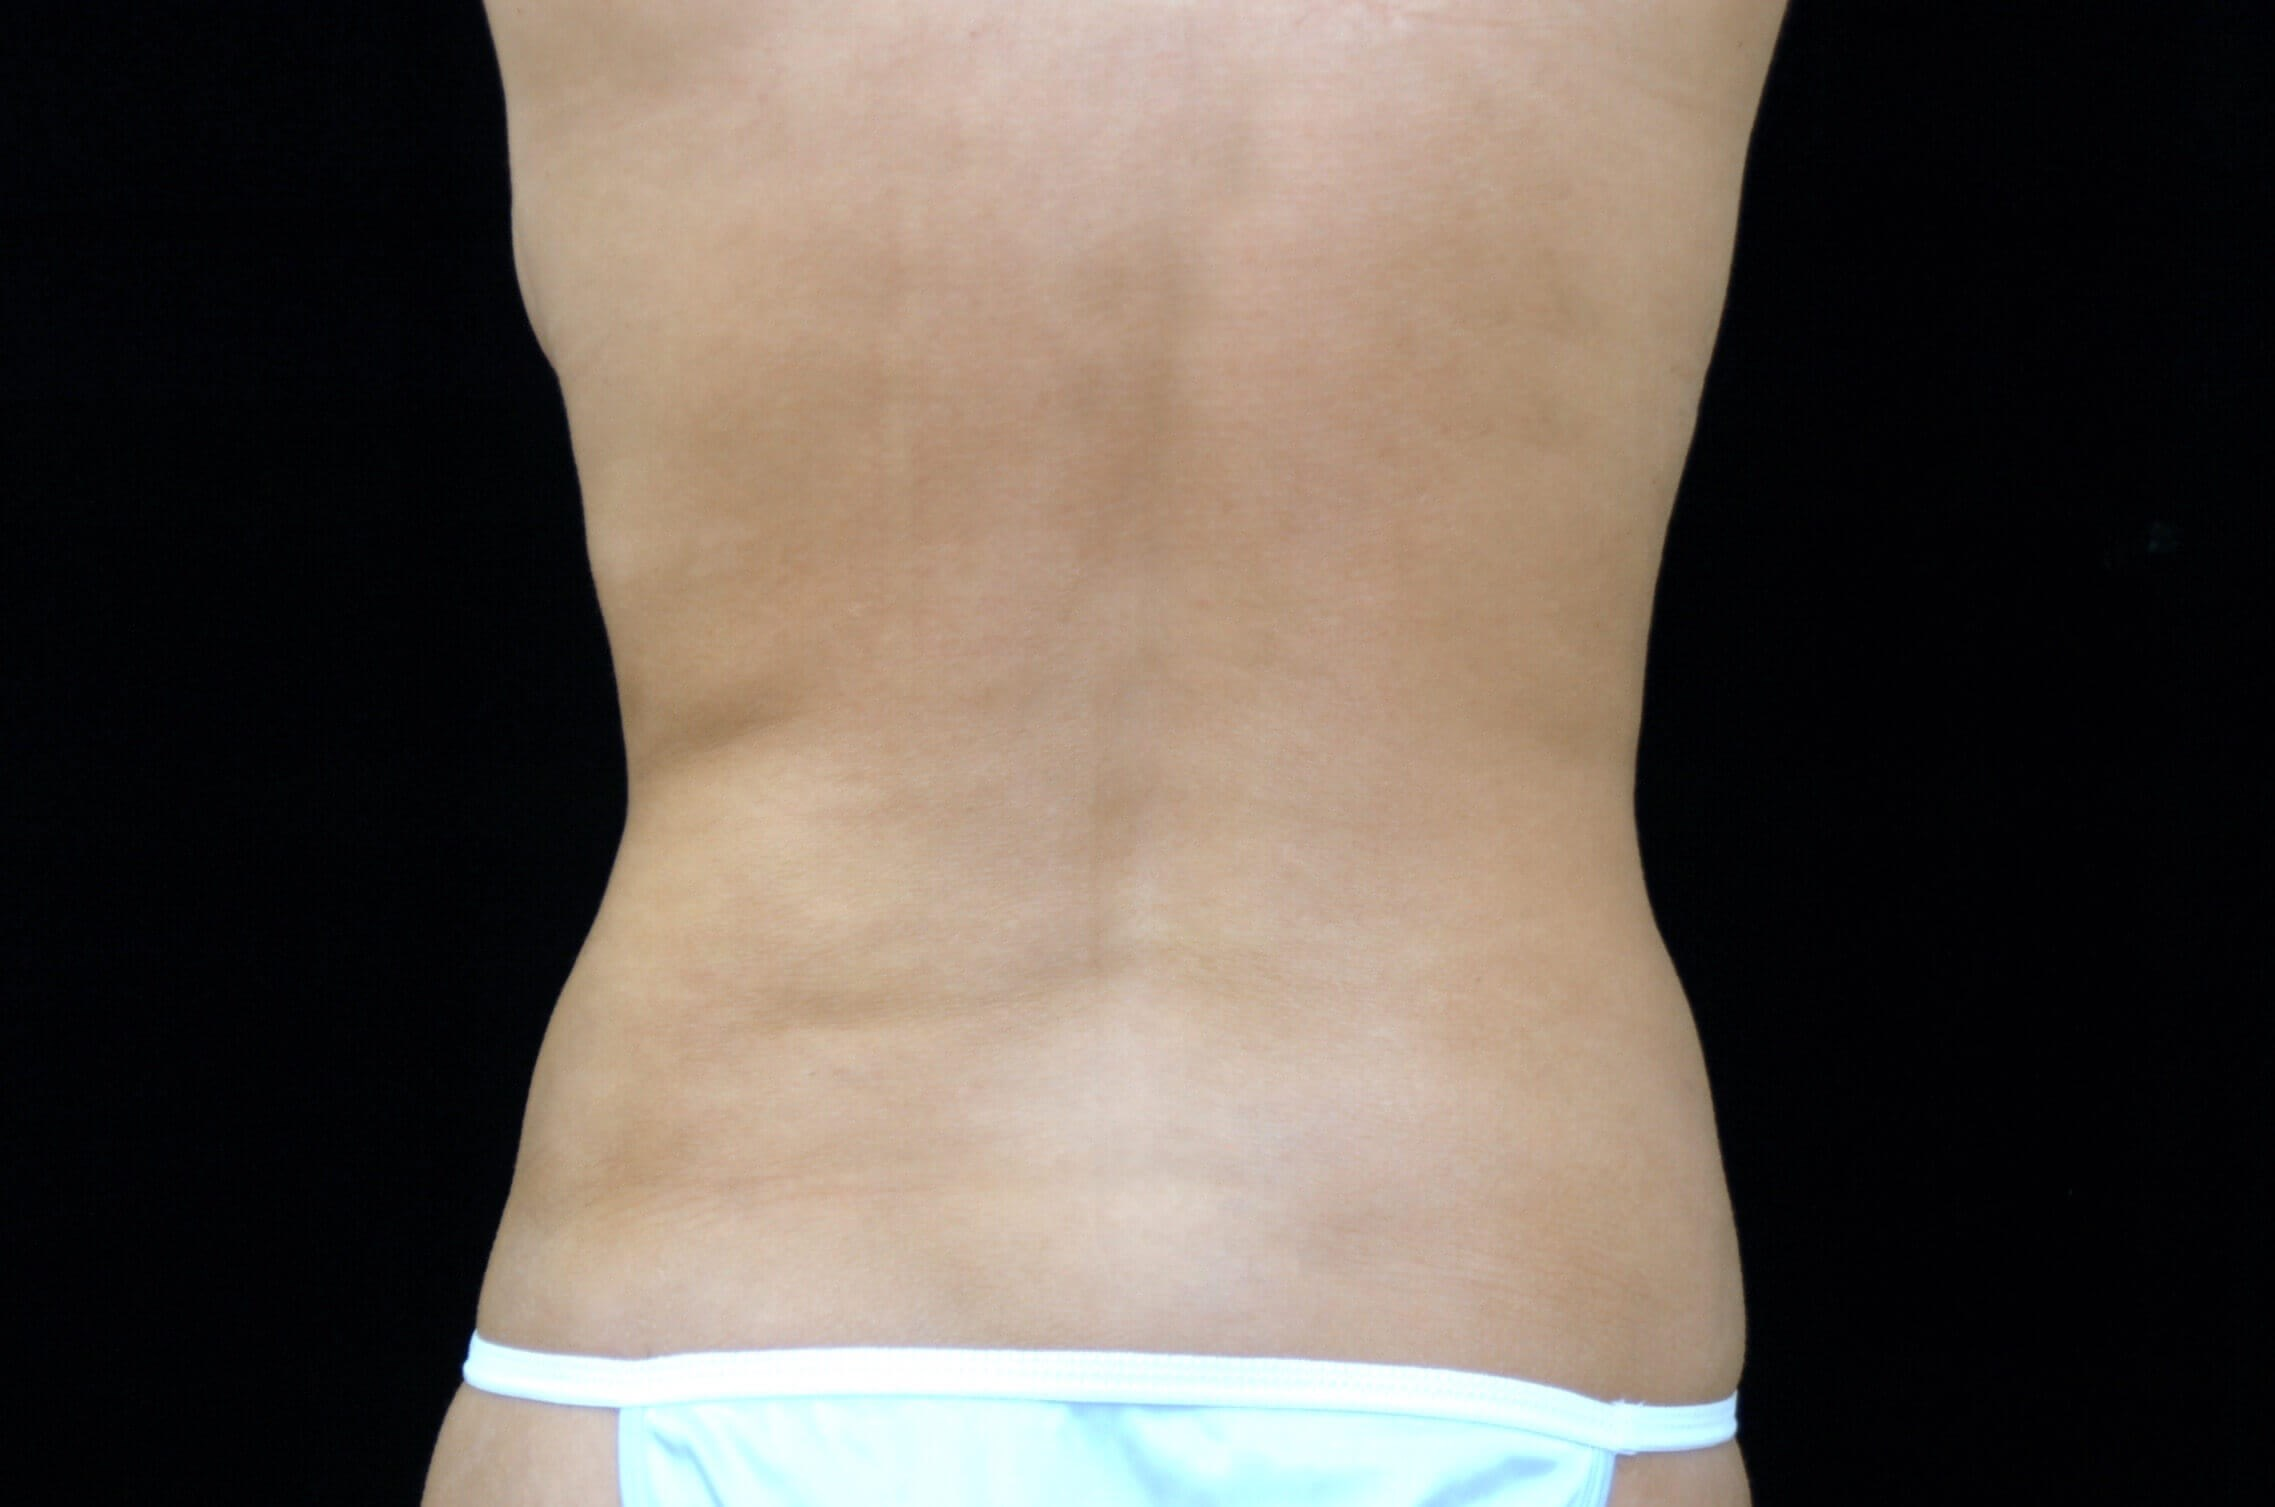 DALLAS, TEXAS WOMAN HAS LIPOSUCTION TO FLANKS AND BACK FOR BODY CONTOURING